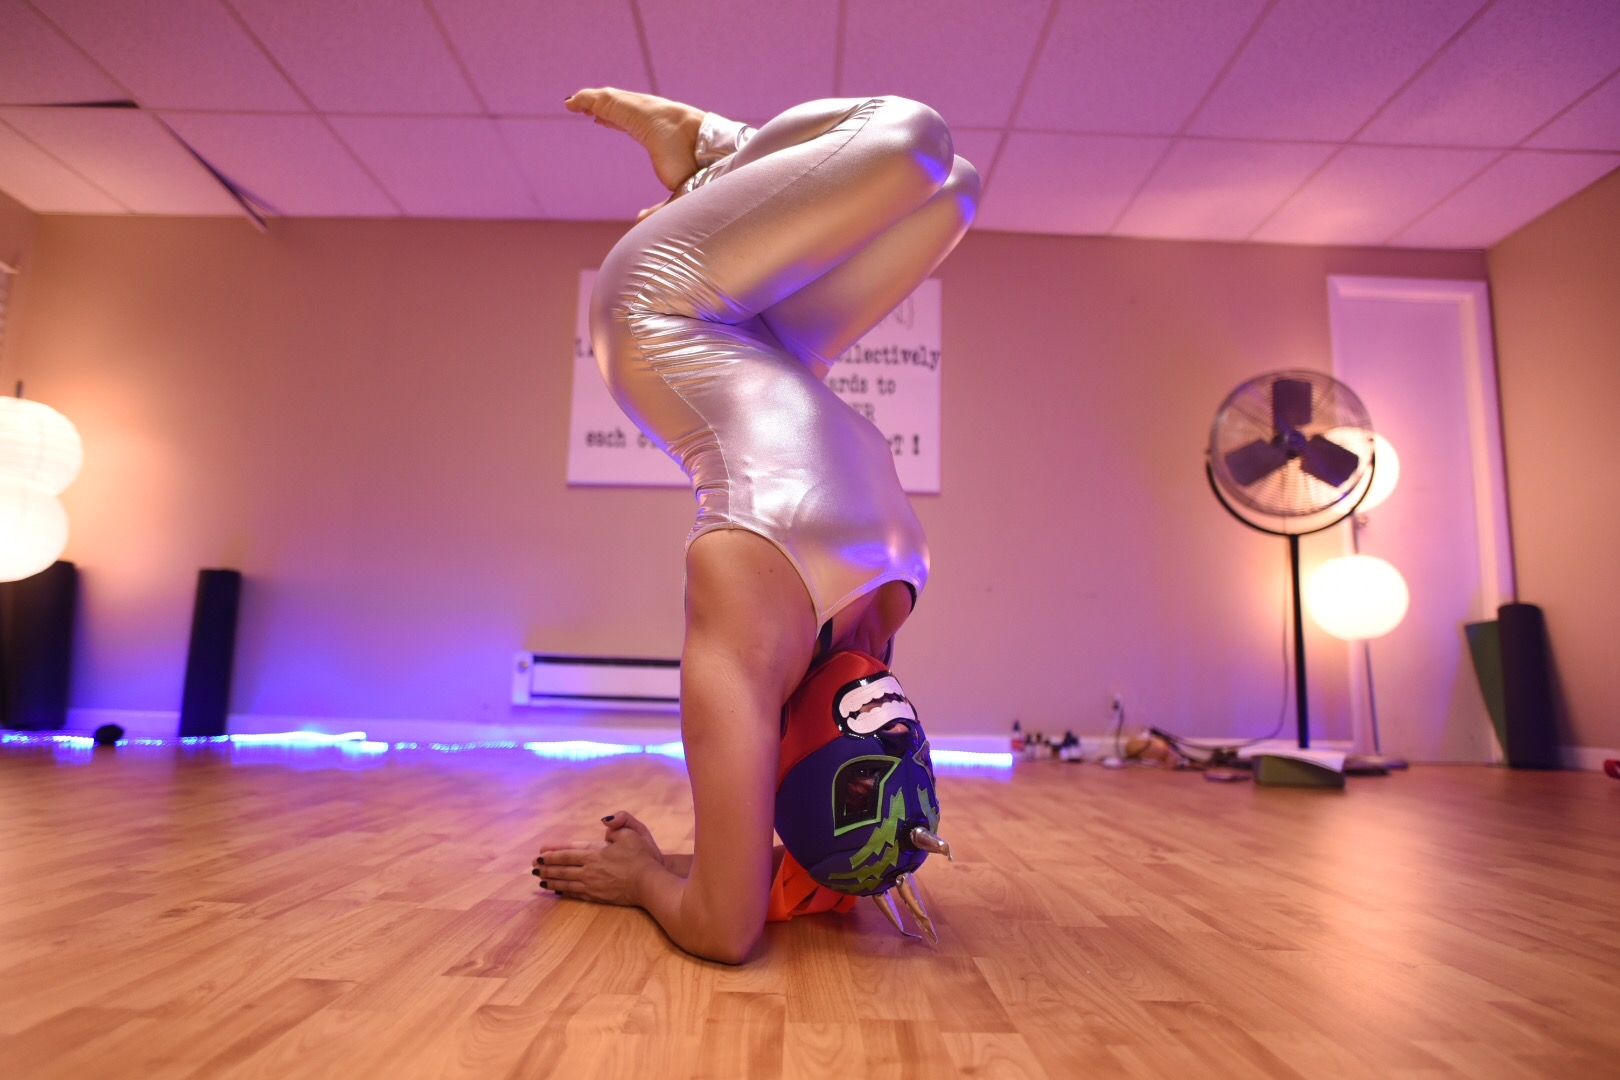 Call the yoga police! I dared to invert in a mask and silver unitard!